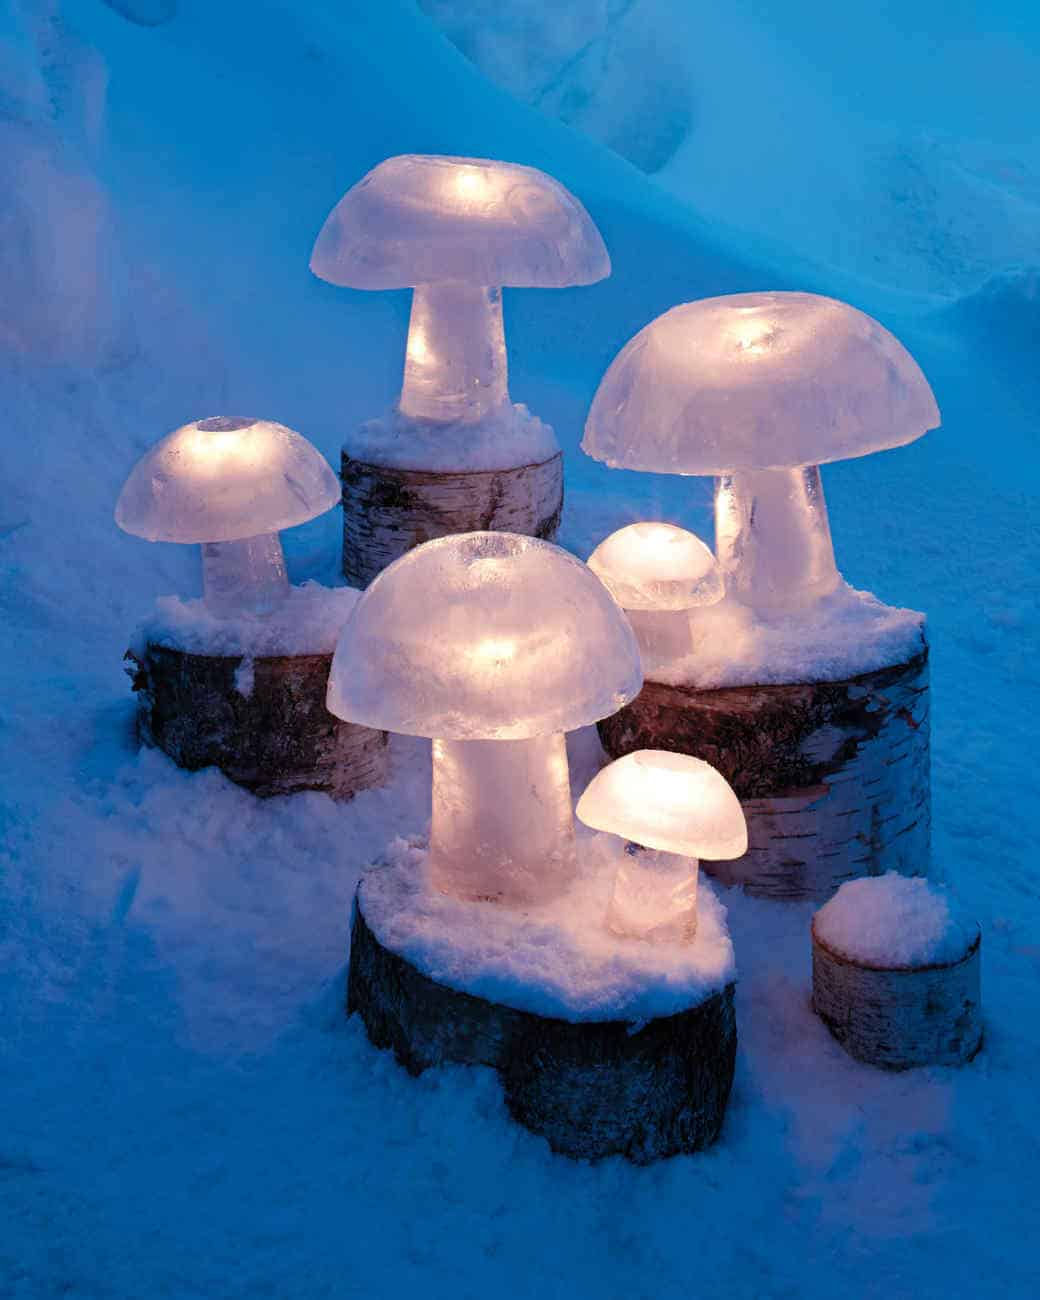 Outdoor winter party ideas: Mushroom Shape Winter Outdoor Lighting